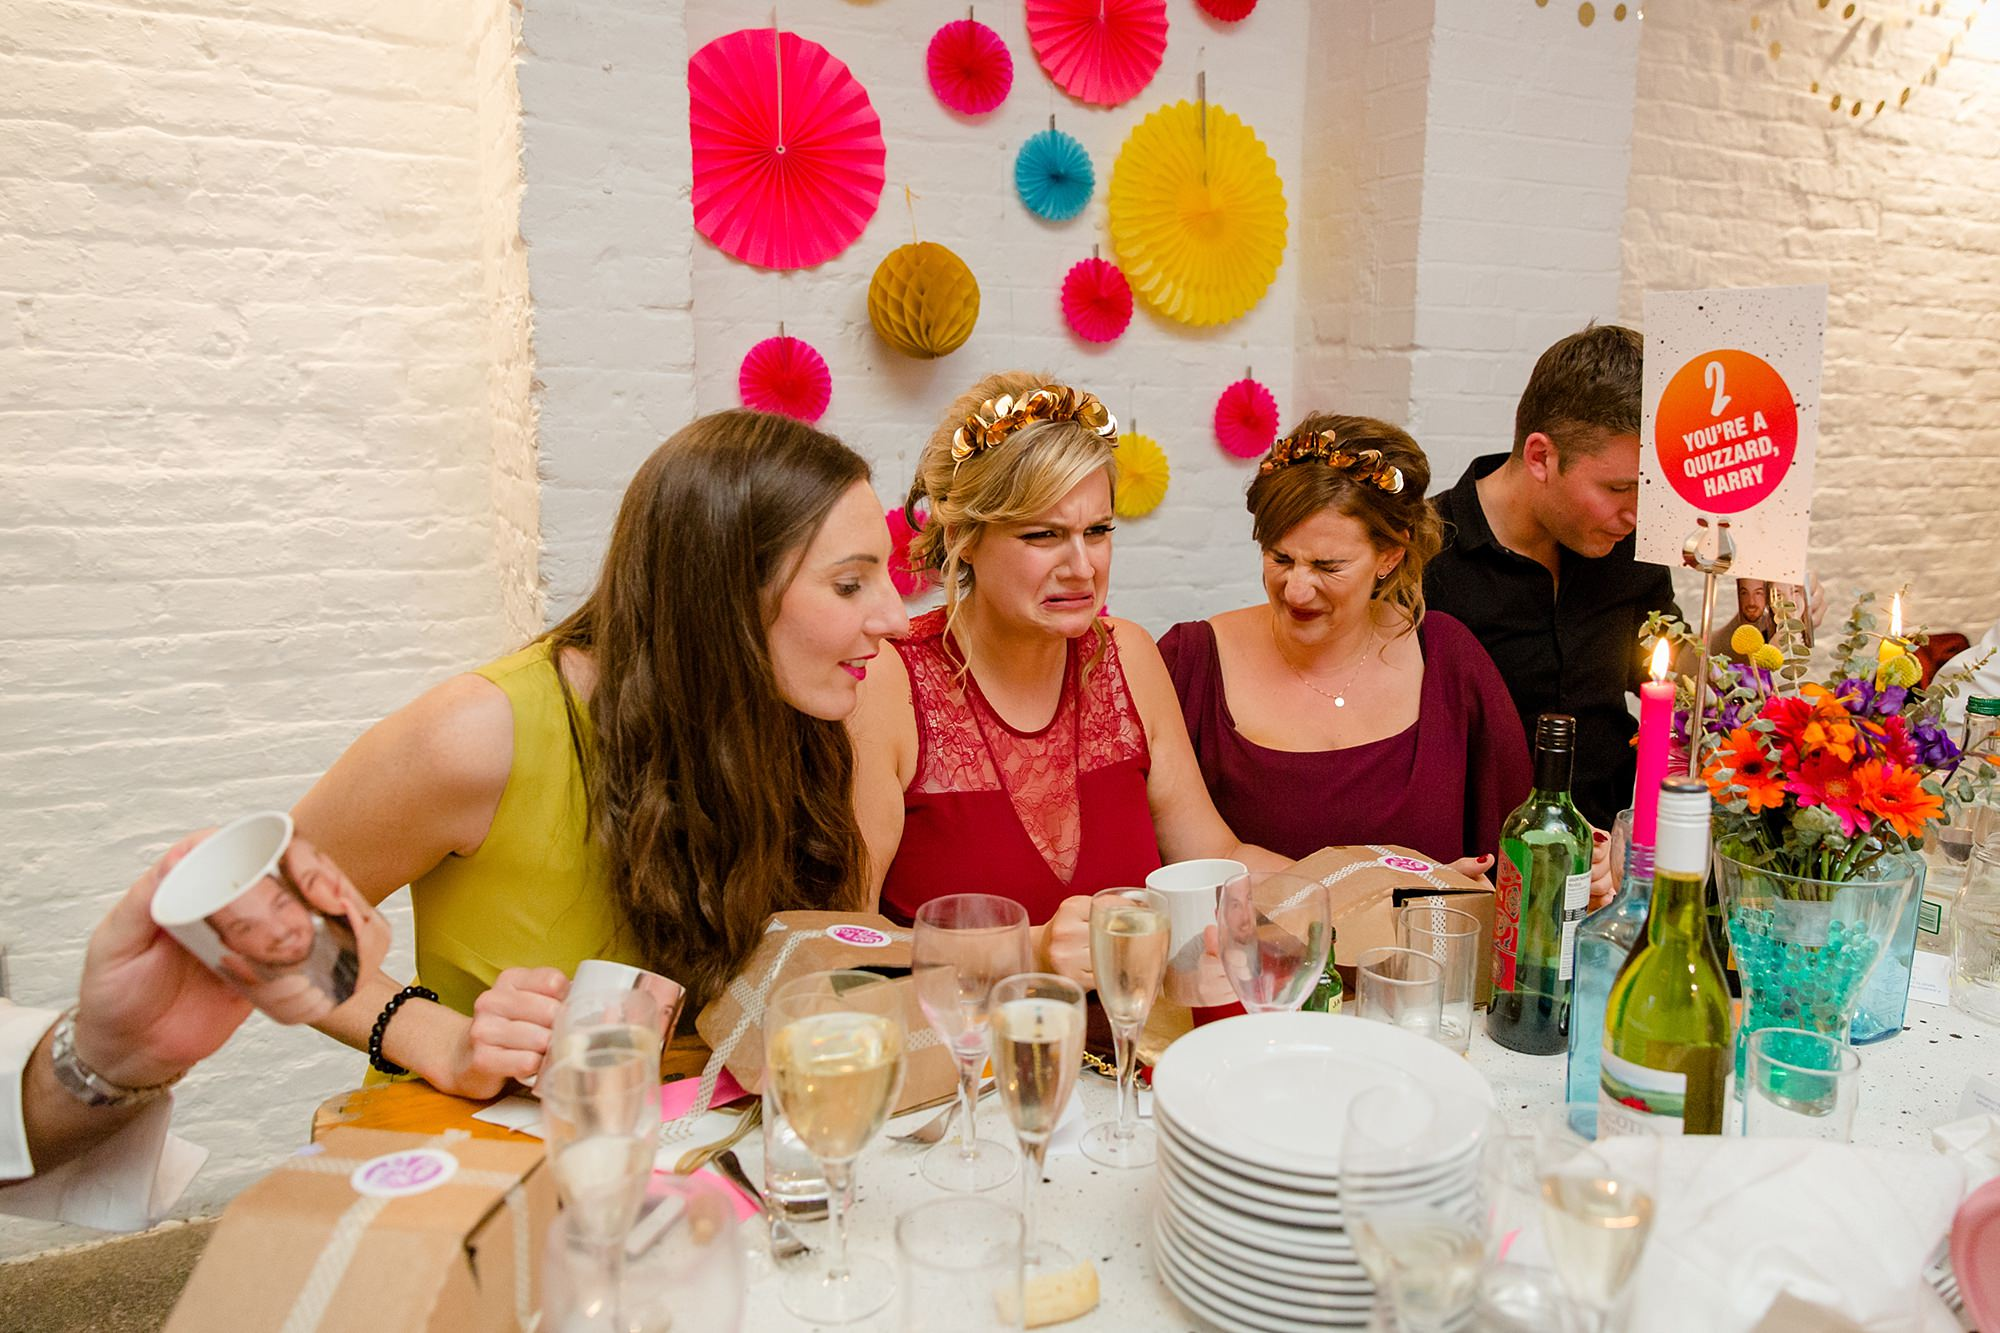 Fun London Wedding funny guests reaction faces after doing a liquor shot